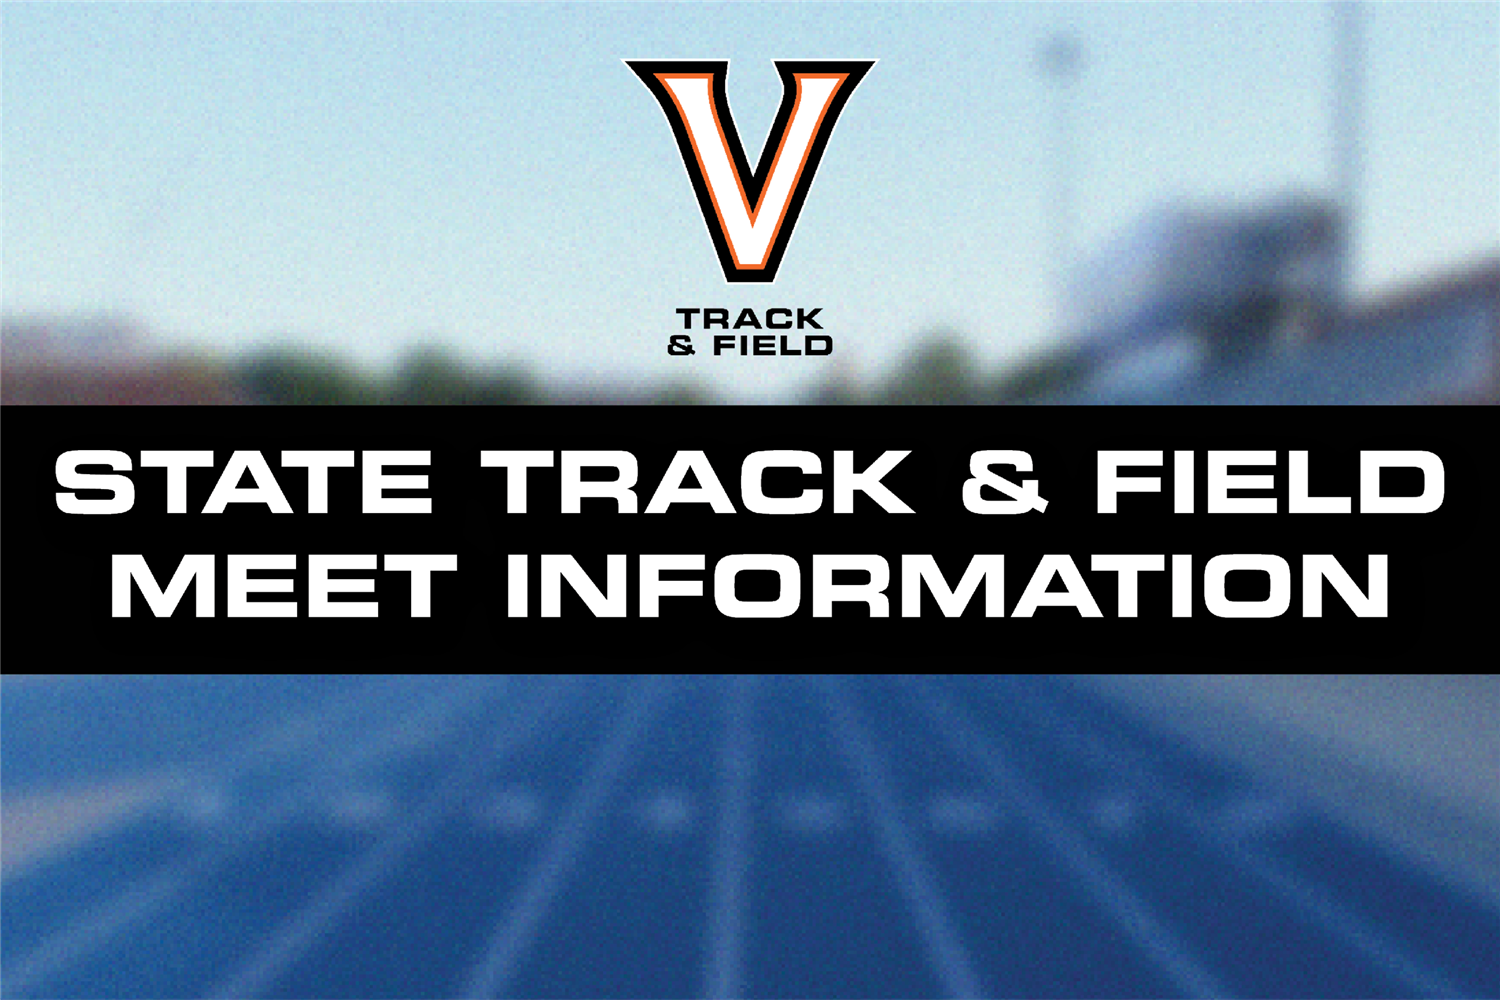 state track and field meet information